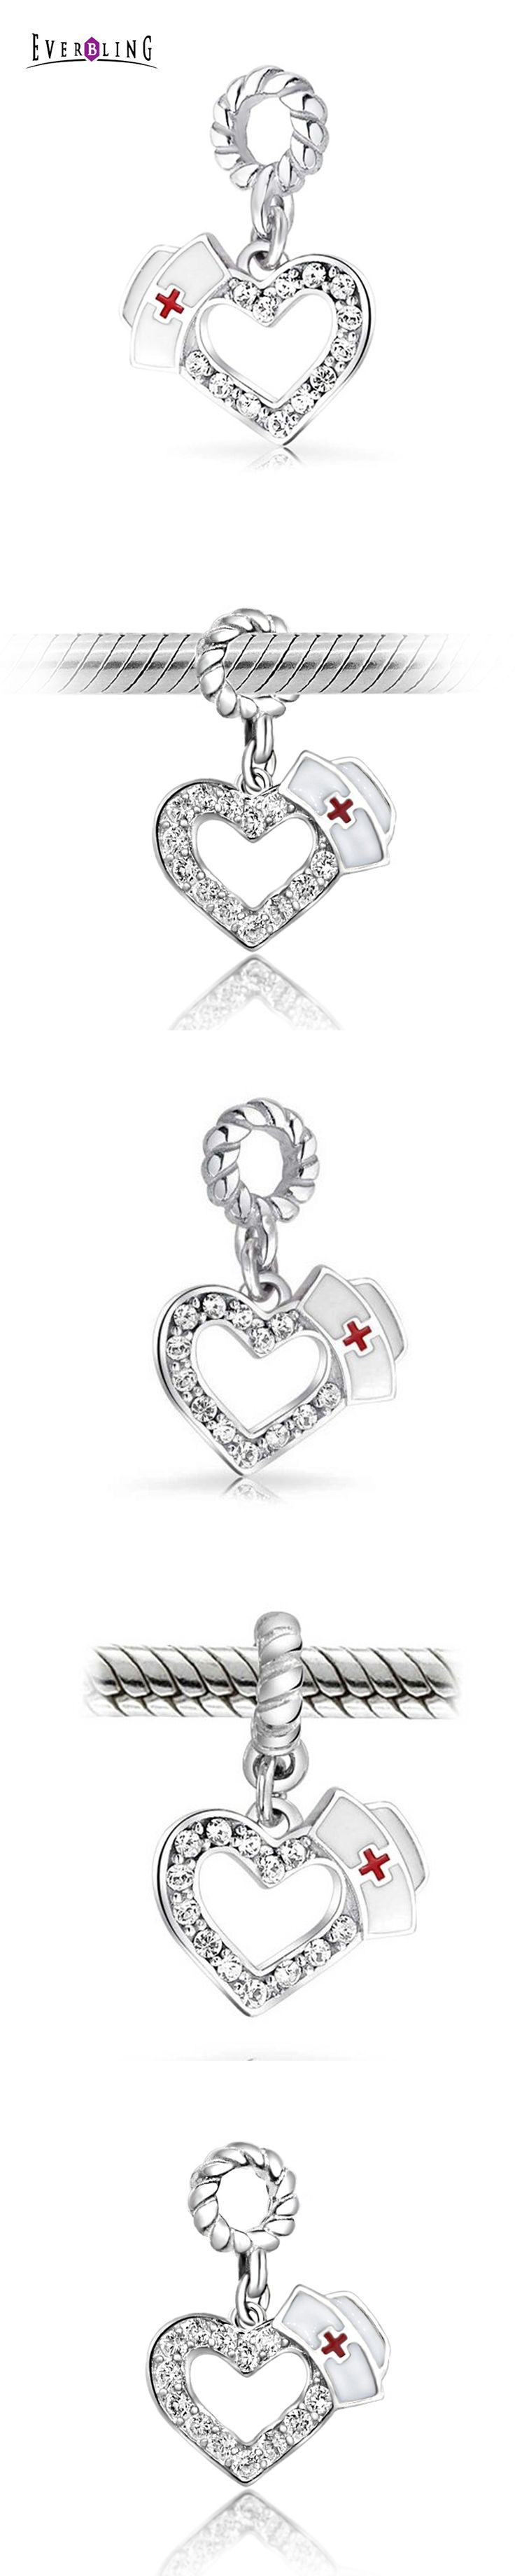 Everbling Jewelry Crystal Nurse Hat Heart Dangle 100% 925 Sterling Silver Charm Beads Fits Pandora European Charms Bracelet M